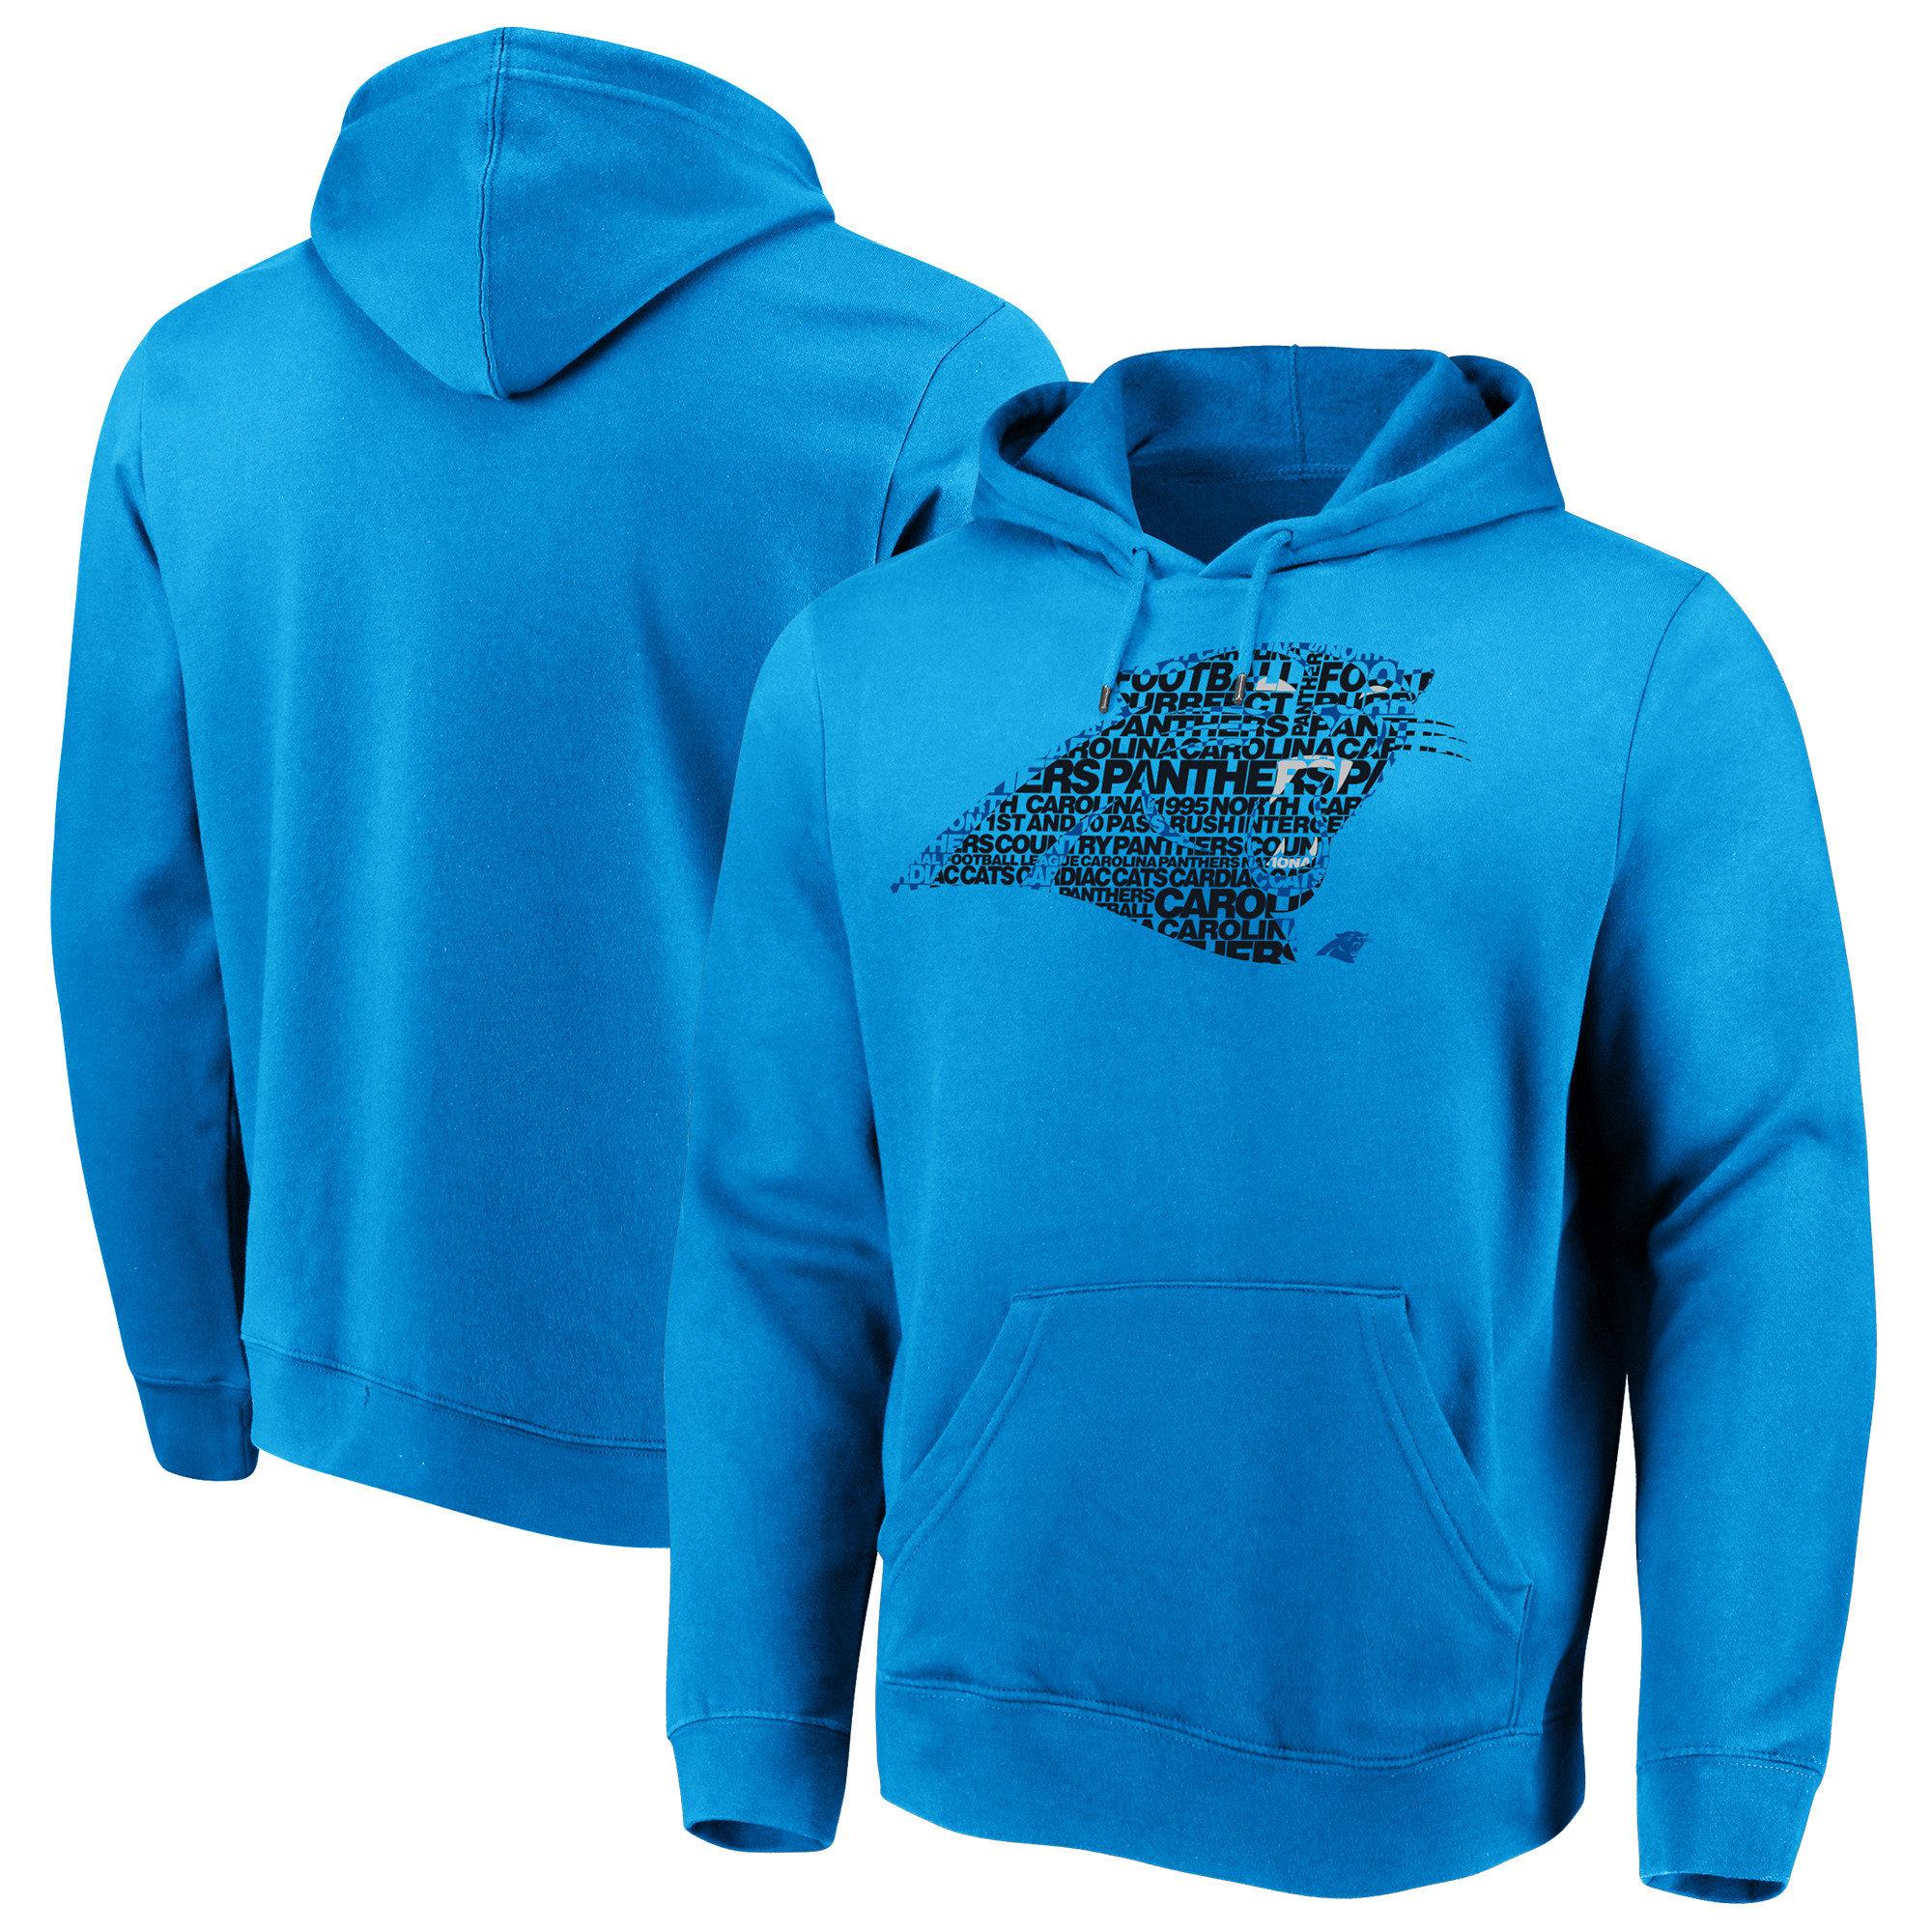 Carolina Panthers Majestic Line of Scrimmage Pullover Hooded Sweatshirt - Blue